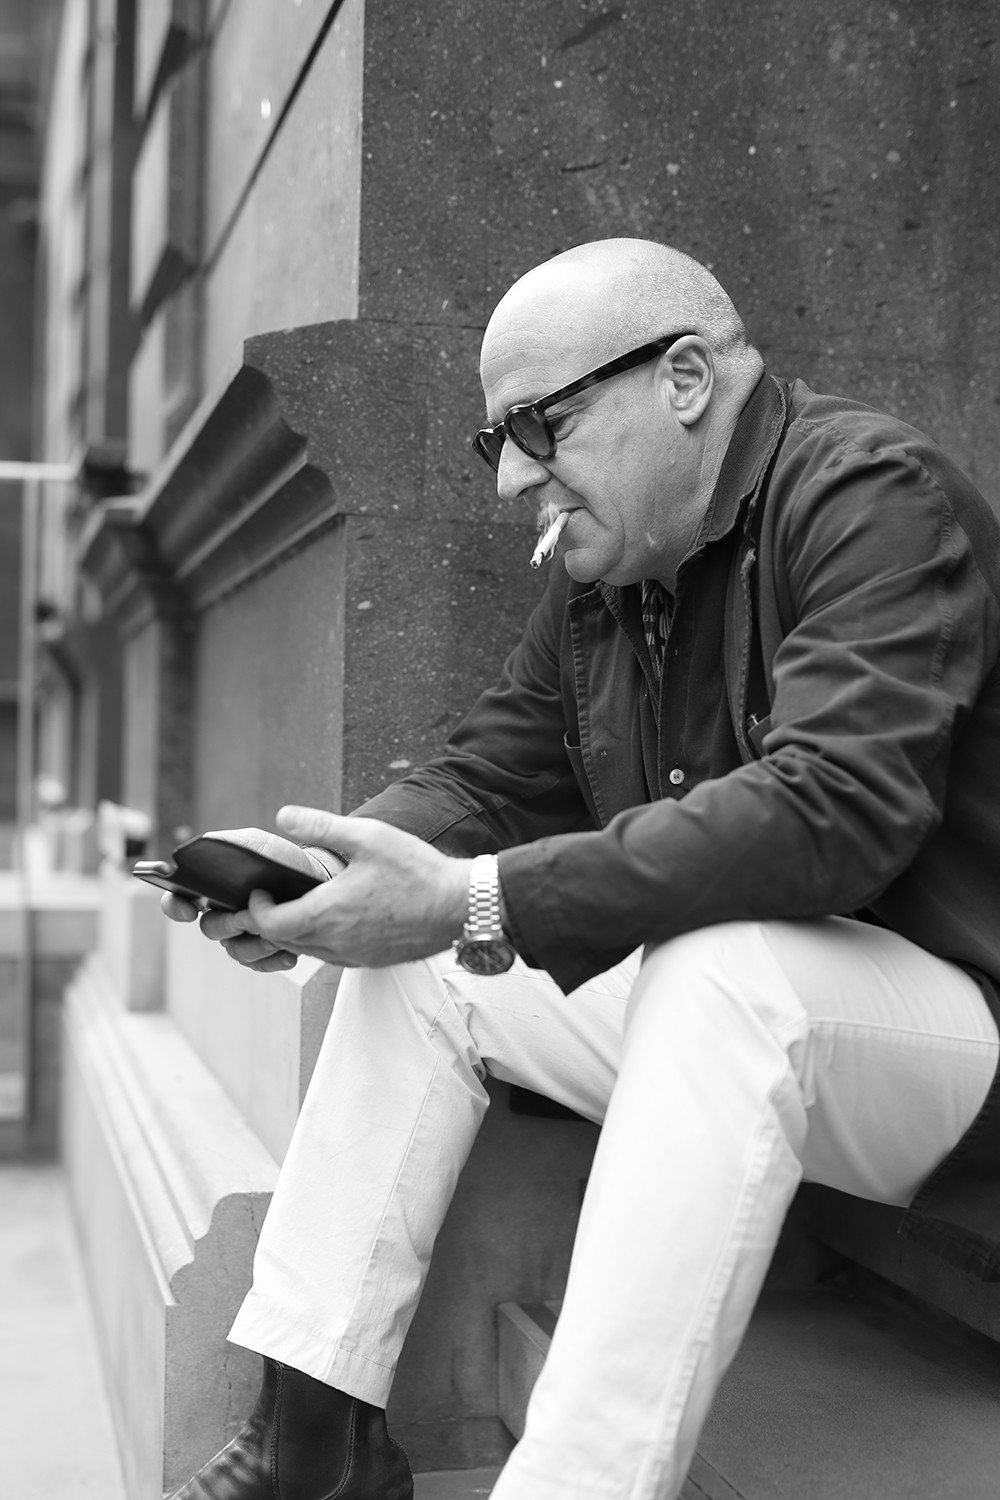 Gianfranco Rosi, 2018